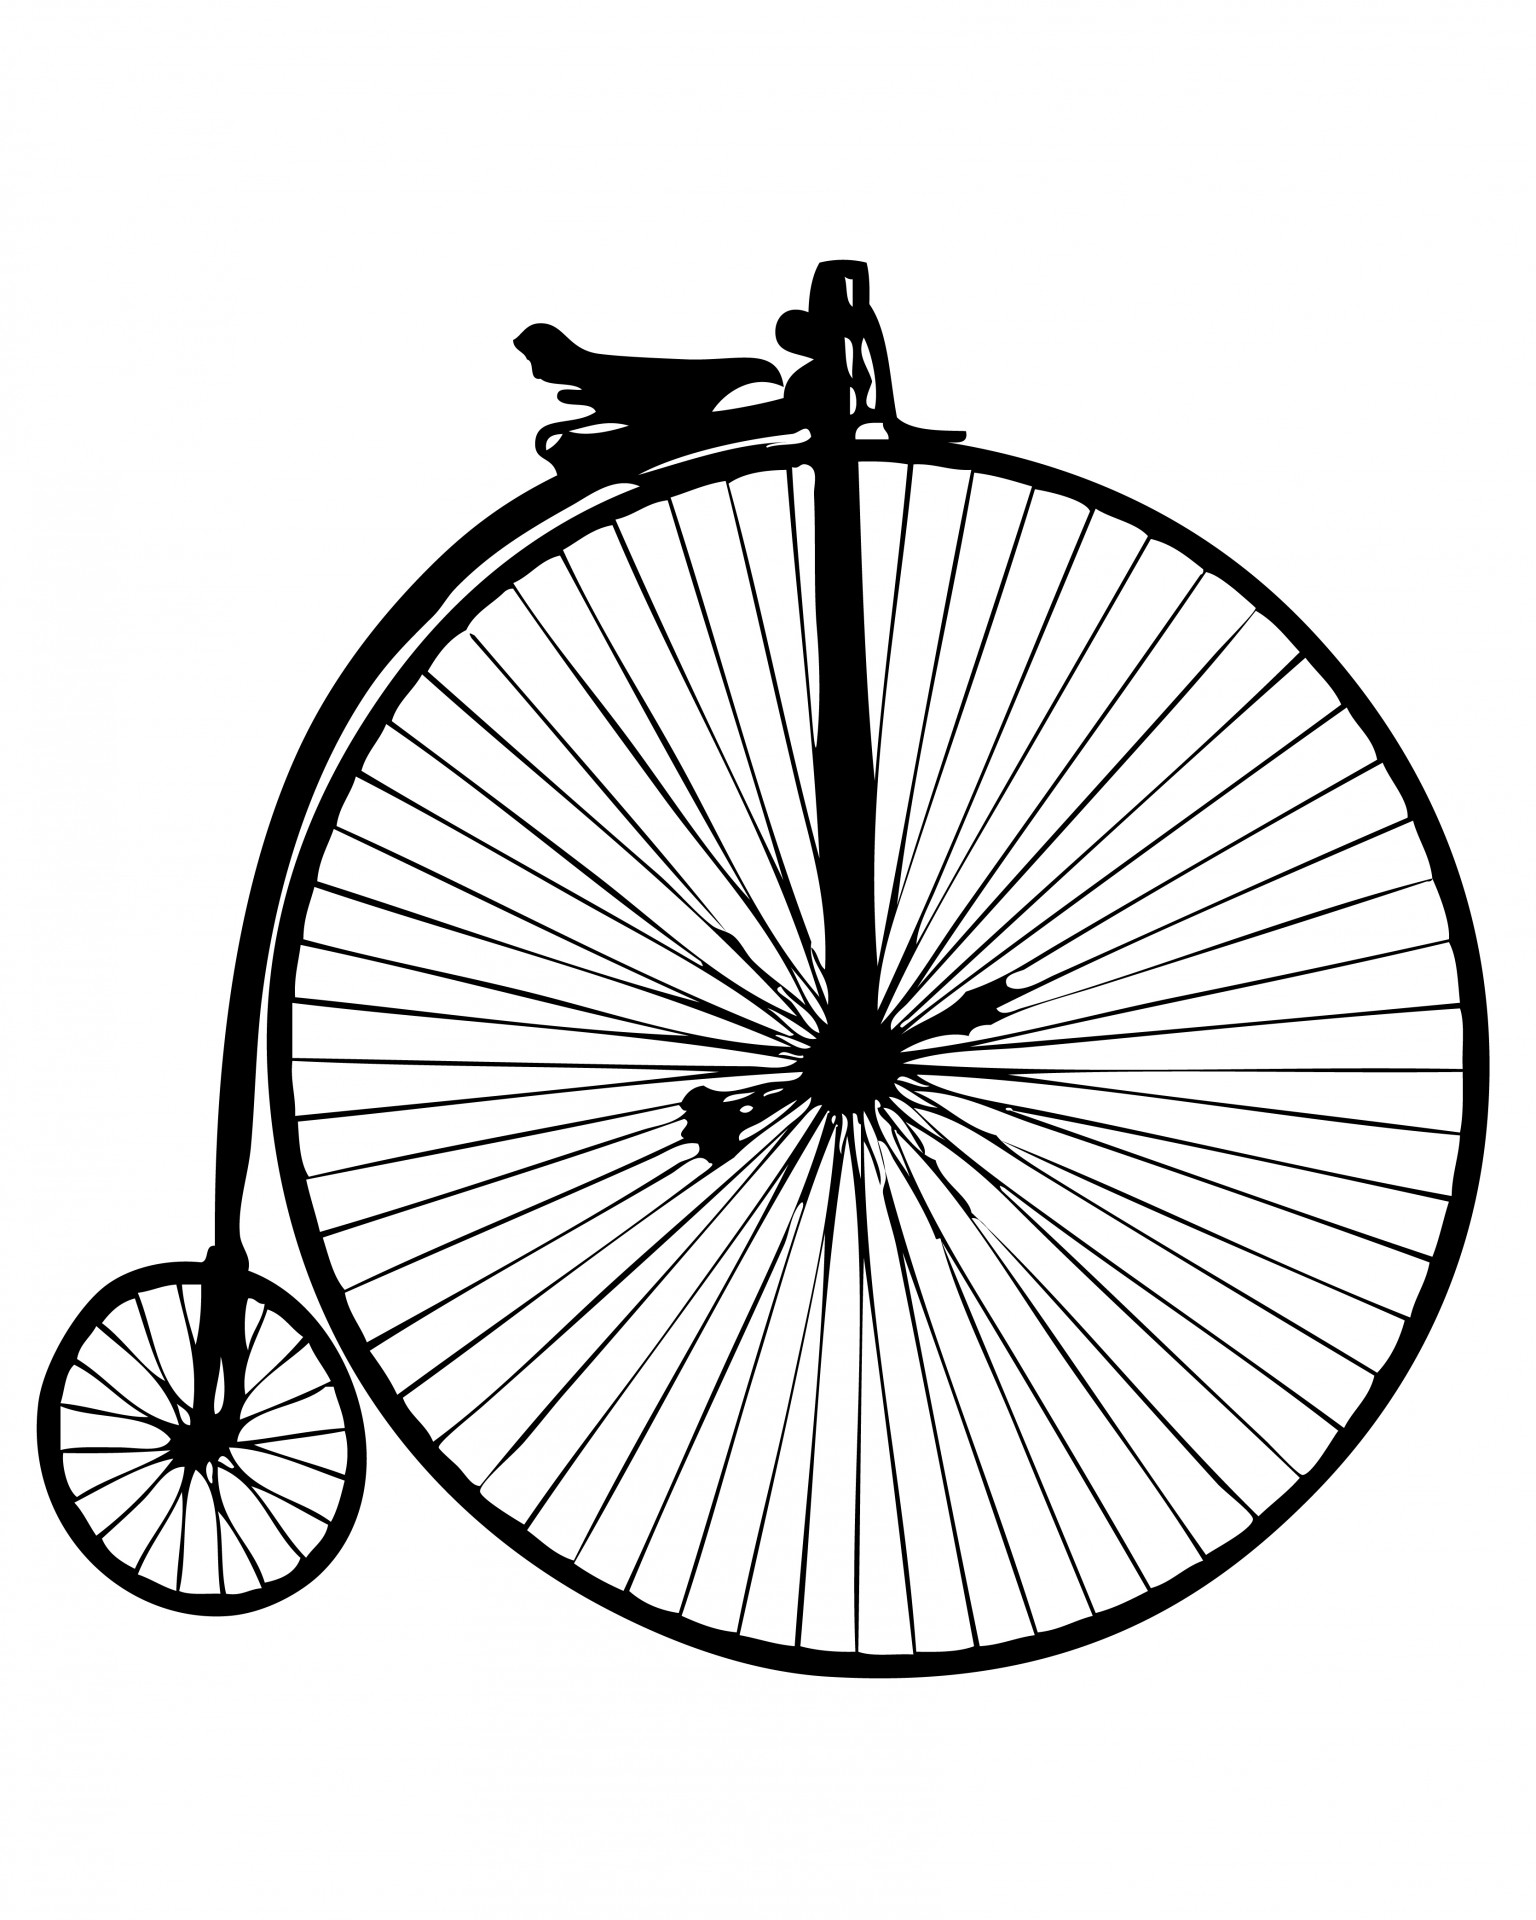 Penny Farthing Vintage Bicycle Free Stock Photo